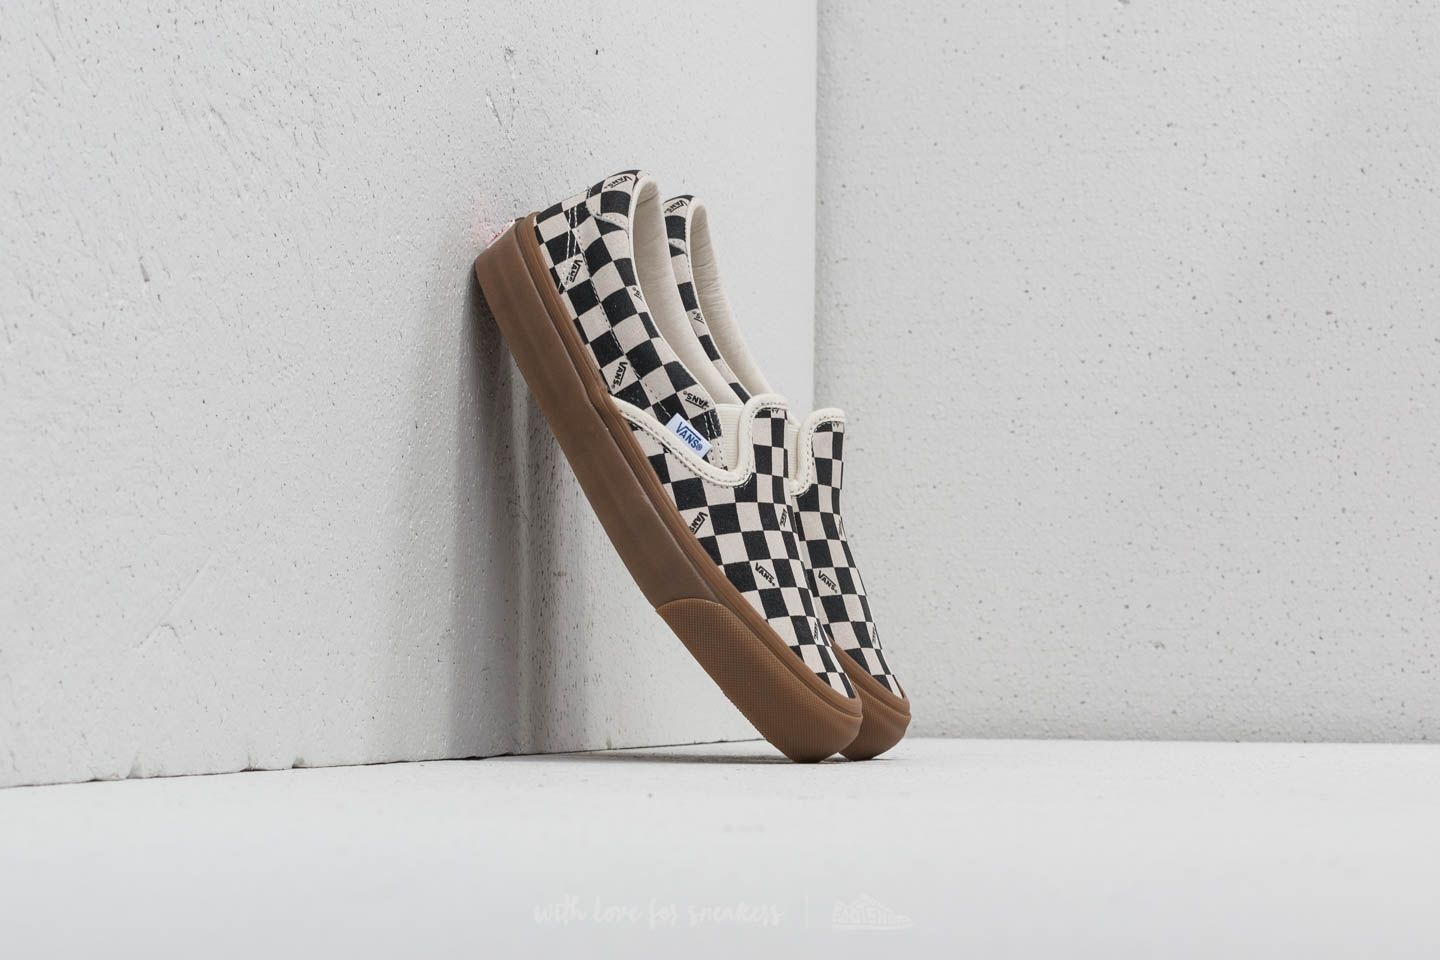 Vans OG Slip-On 59 LX (Suede) Checkerboard/ Light Gum